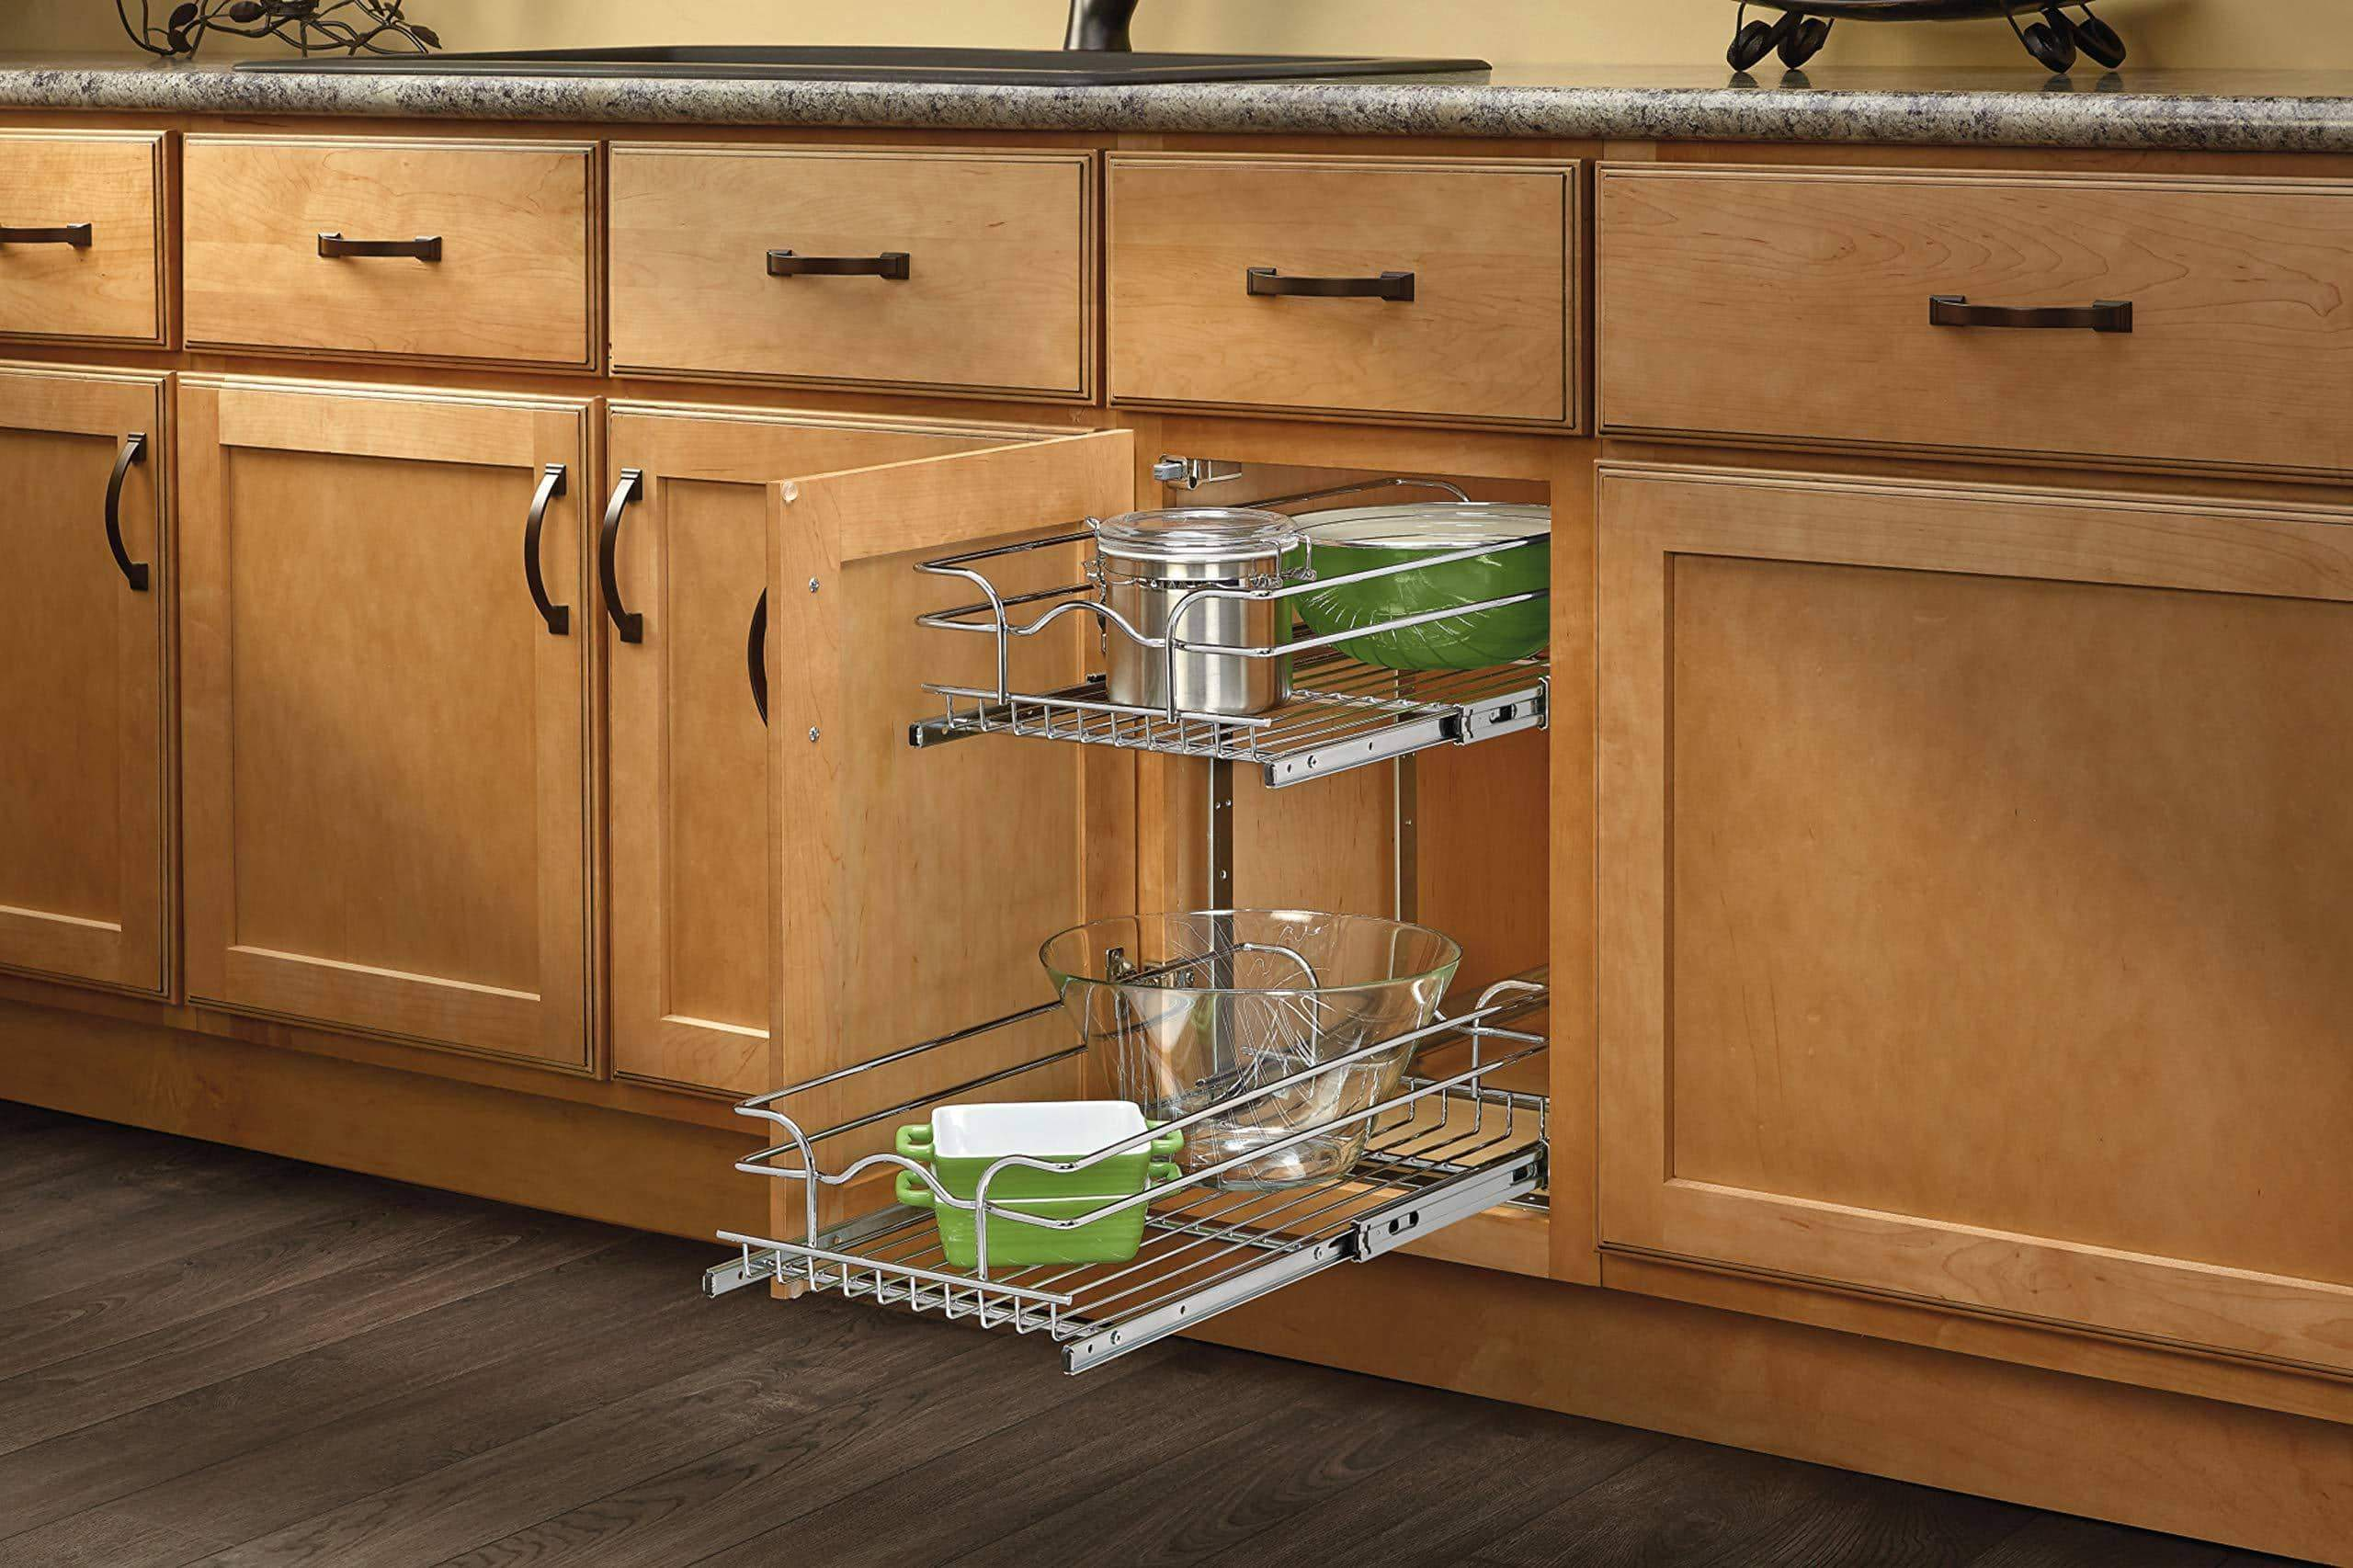 Select nice rev a shelf 5wb2 1218 cr 12 in w x 18 in d base cabinet pull out chrome 2 tier wire basket